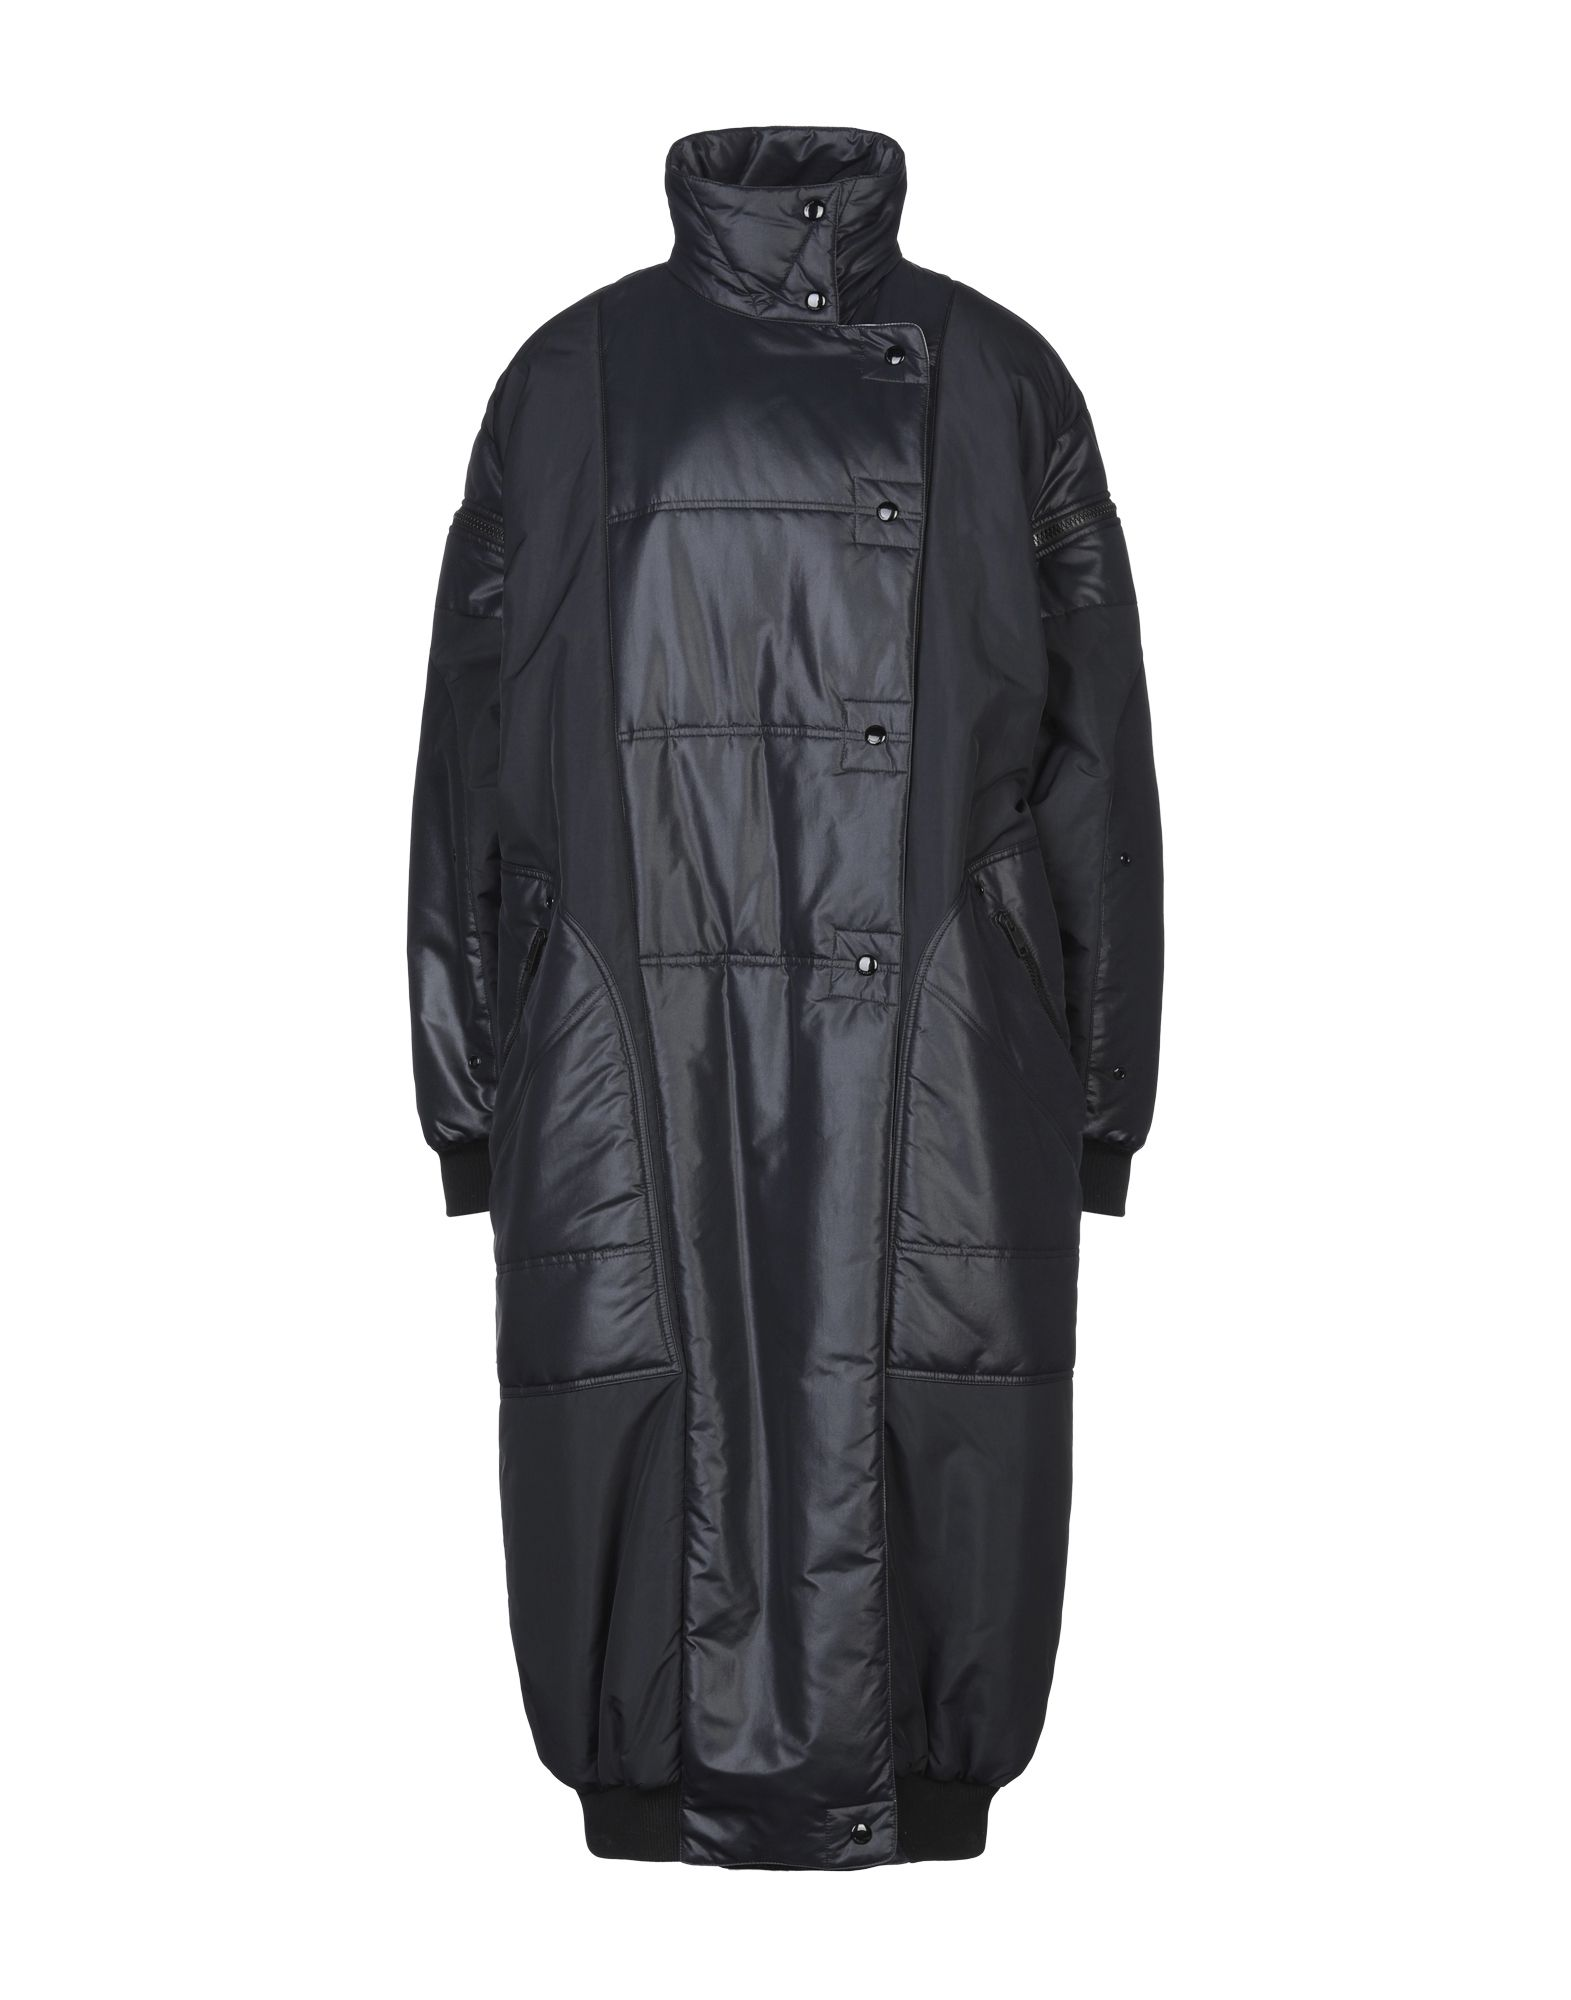 GIVENCHY Synthetic Down Jackets - Item 41953654